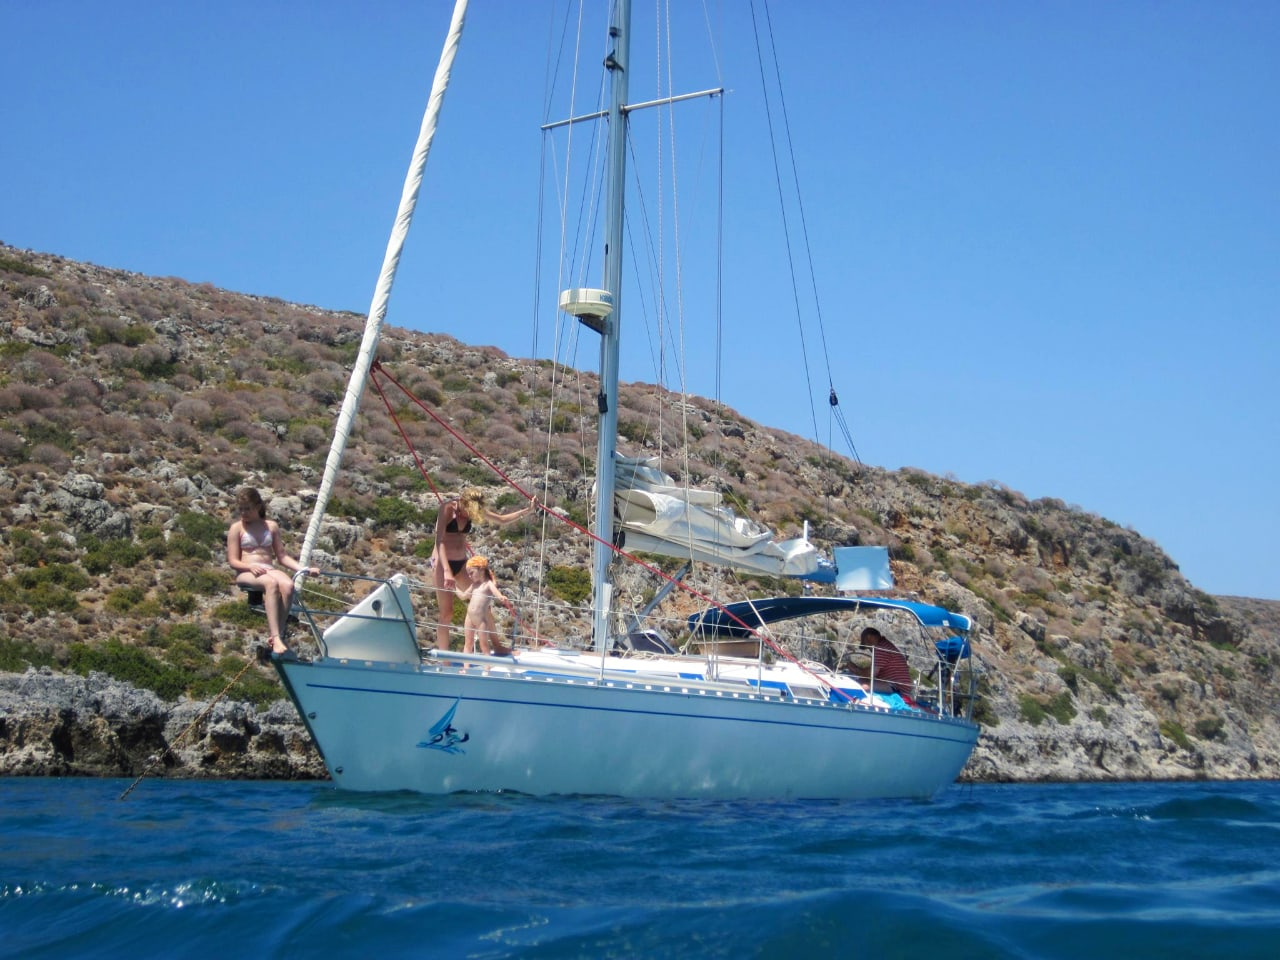 Daily Sailing Trip In Chania Crete, Daily Sailing Cruise Chania Crete, best sailing trip chania Crete, best activity chania crete, most friendly sipper chania crete, notos sailing chania crete, nikos skipper notos sailing chania, sailing tours chania crete